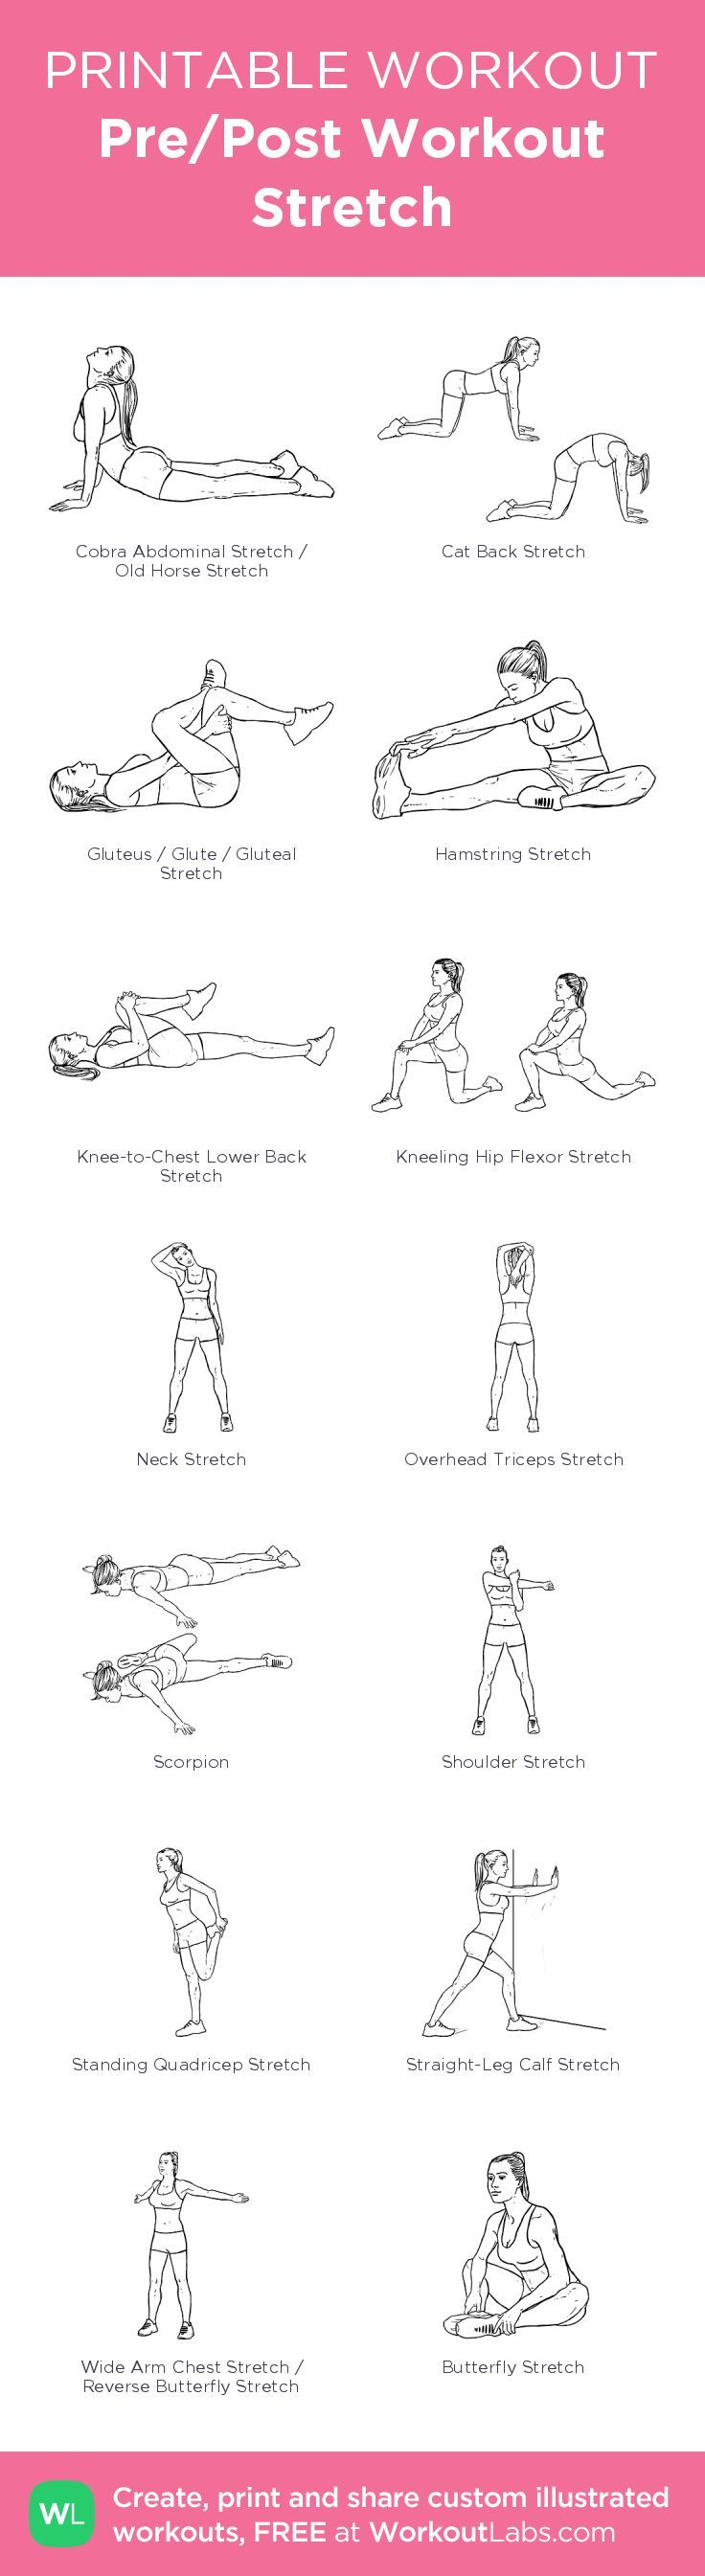 Pre/Post Workout Stretch– my custom exercise plan created at http://WorkoutLabs.com • Click through to download as a printable workout PDF #customworkout